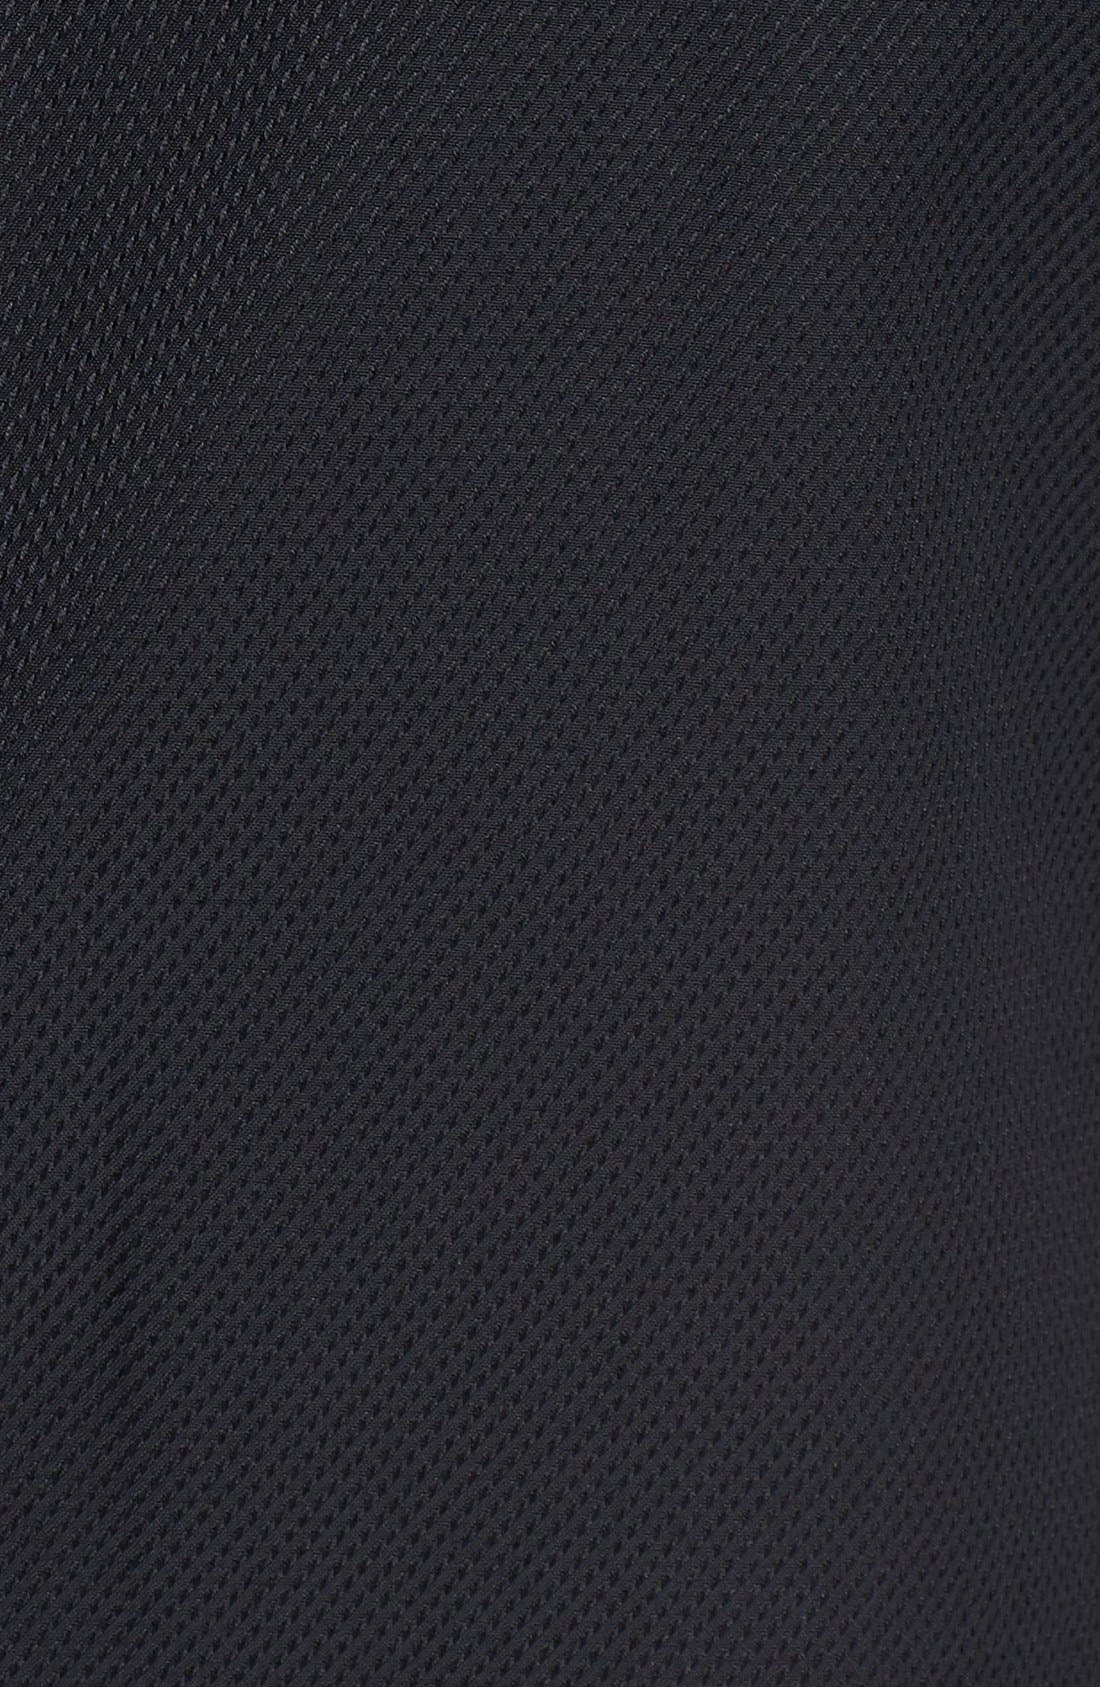 Textured Sport Shirt,                             Alternate thumbnail 5, color,                             001